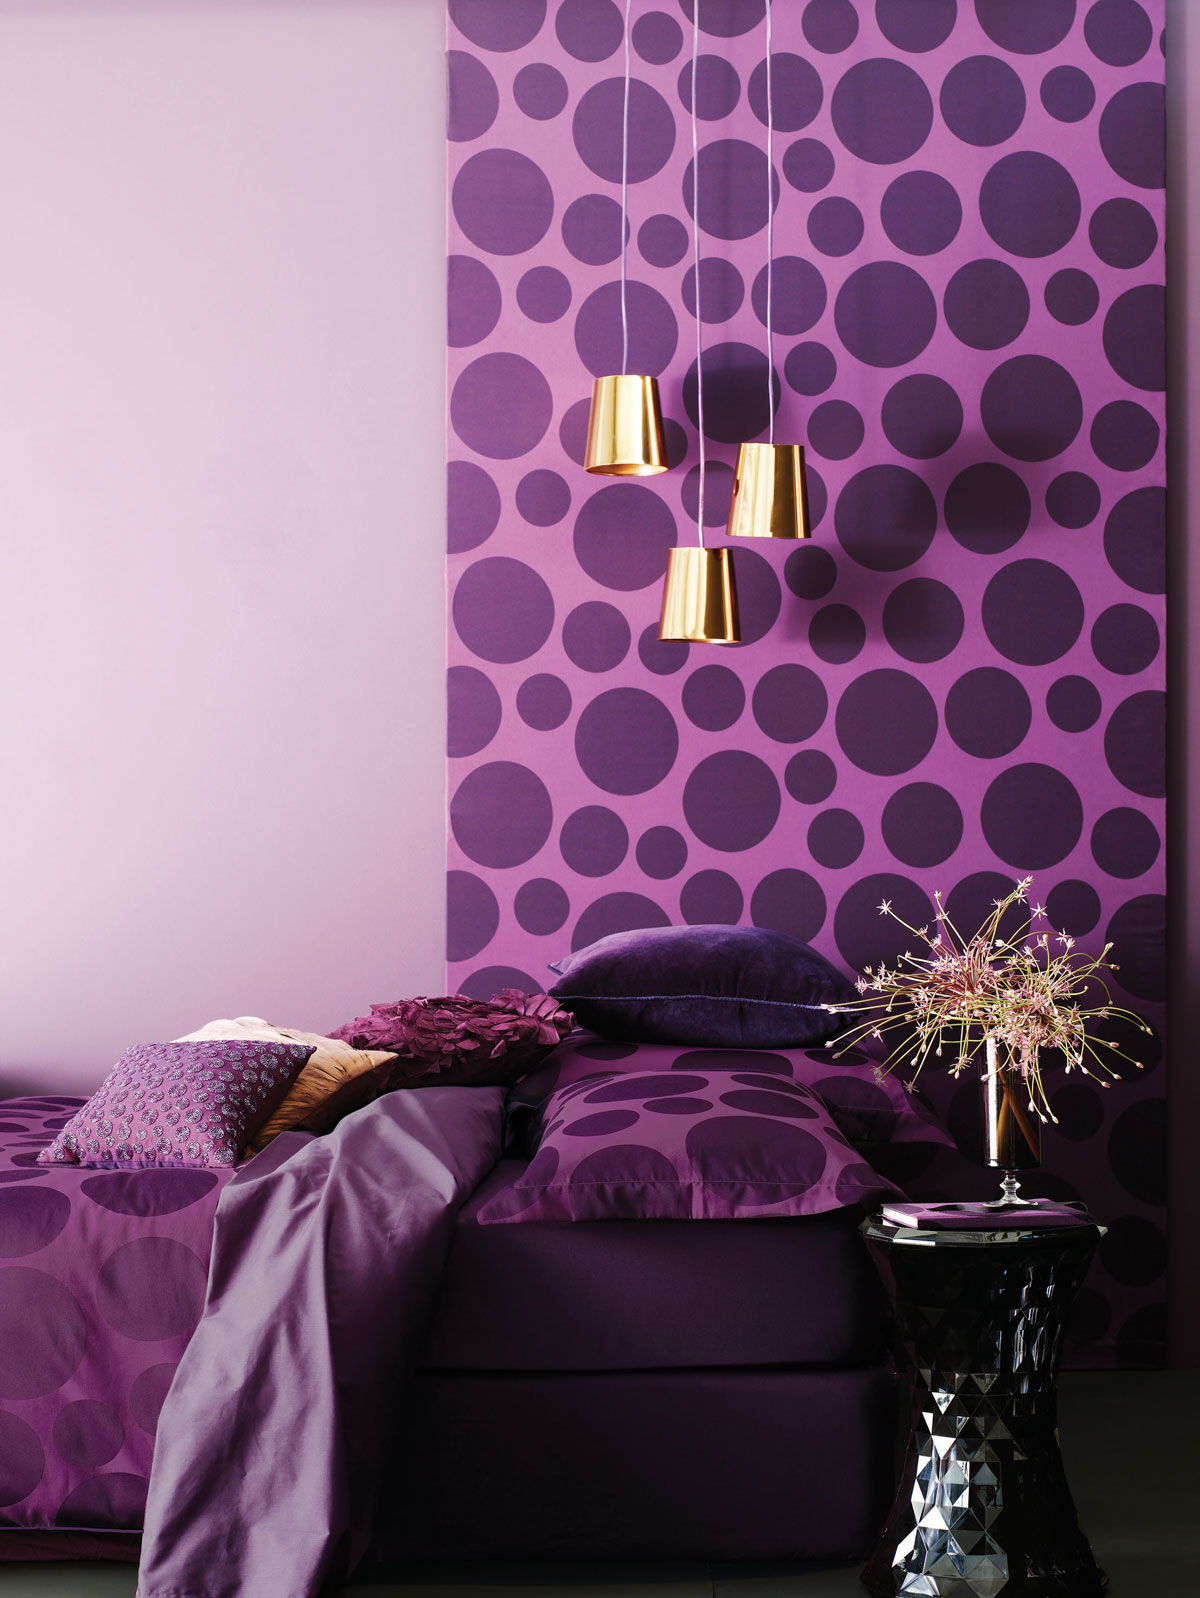 0ed11__wonderful-purple-bedroom-with-beautiful-wallpaper